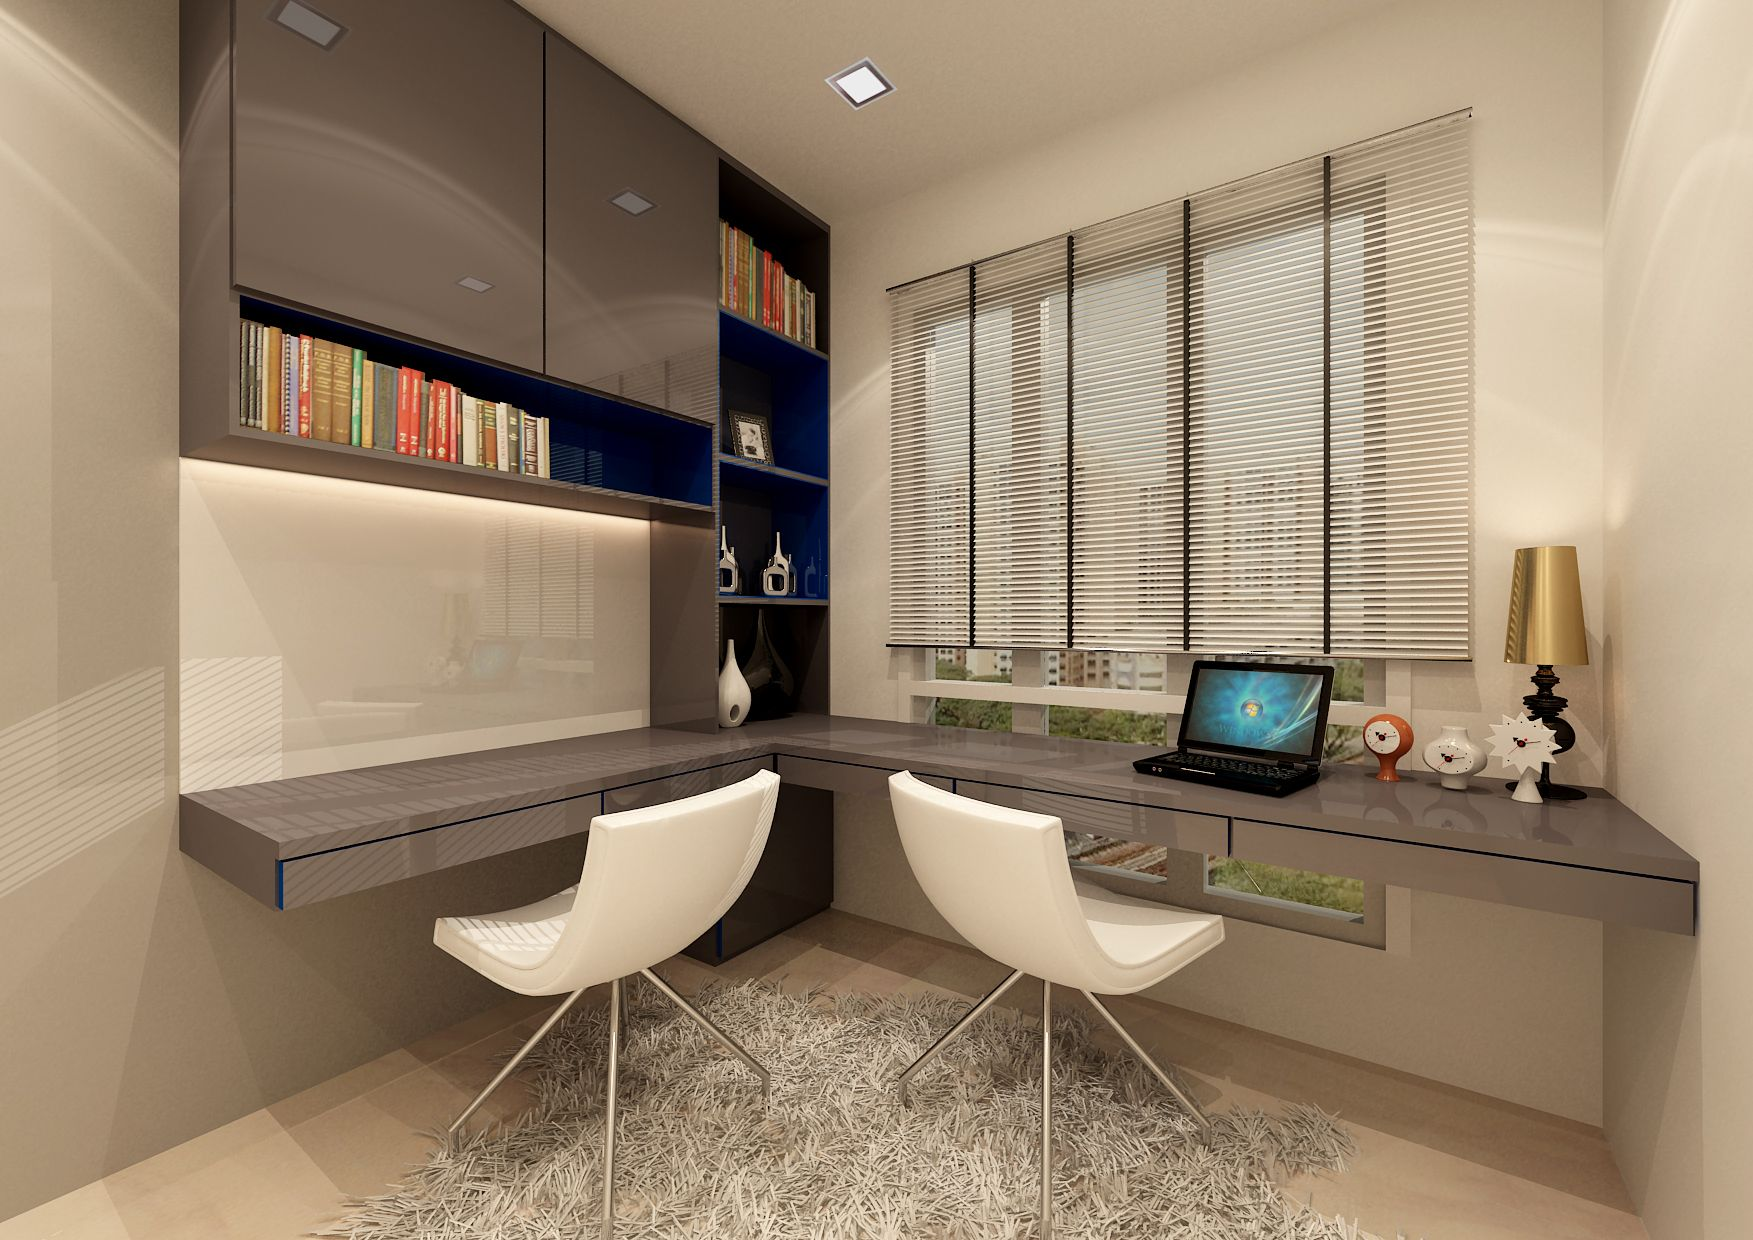 Study Room Design Simple